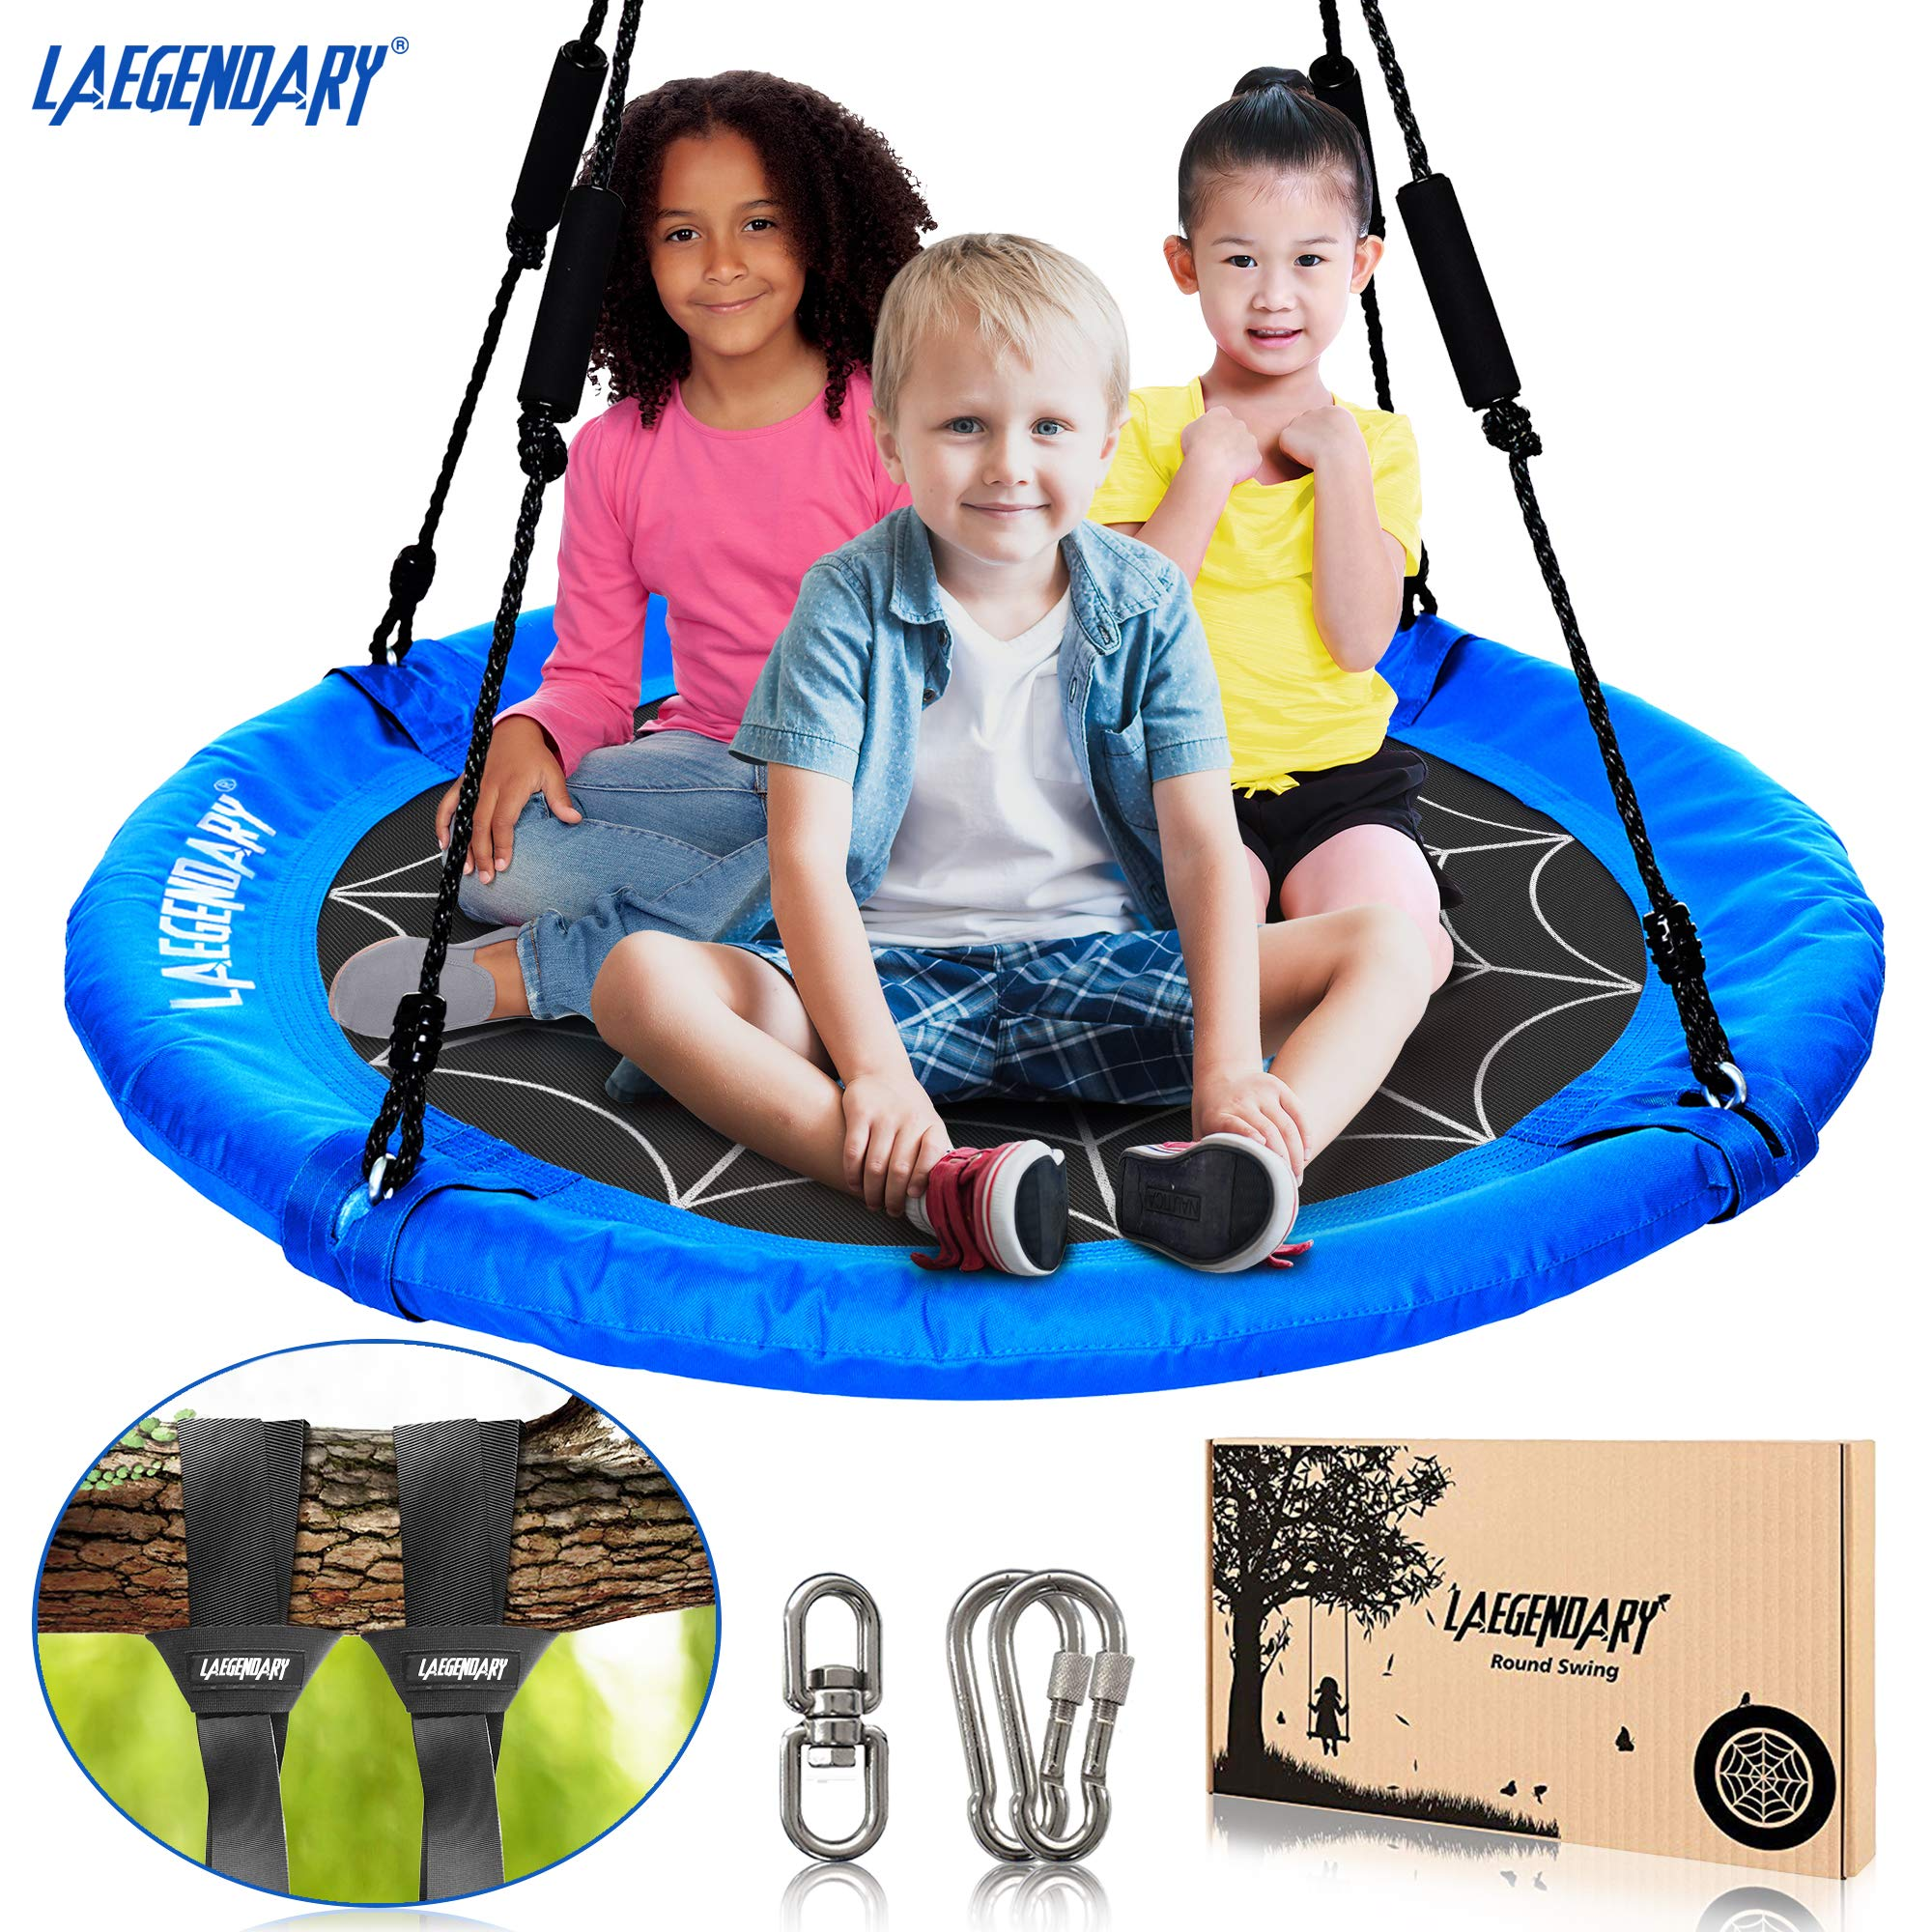 40 Inch Flying Saucer Tree Swing for Kids - Round Indoor Outdoor Swingset Toys - 450 Pounds Sensory Web Tire Swings - 2 Tree Straps, 2 Carabiners, 1 Swivel - Durable Frame, Waterproof Yard Swings Set by LÆGENDARY